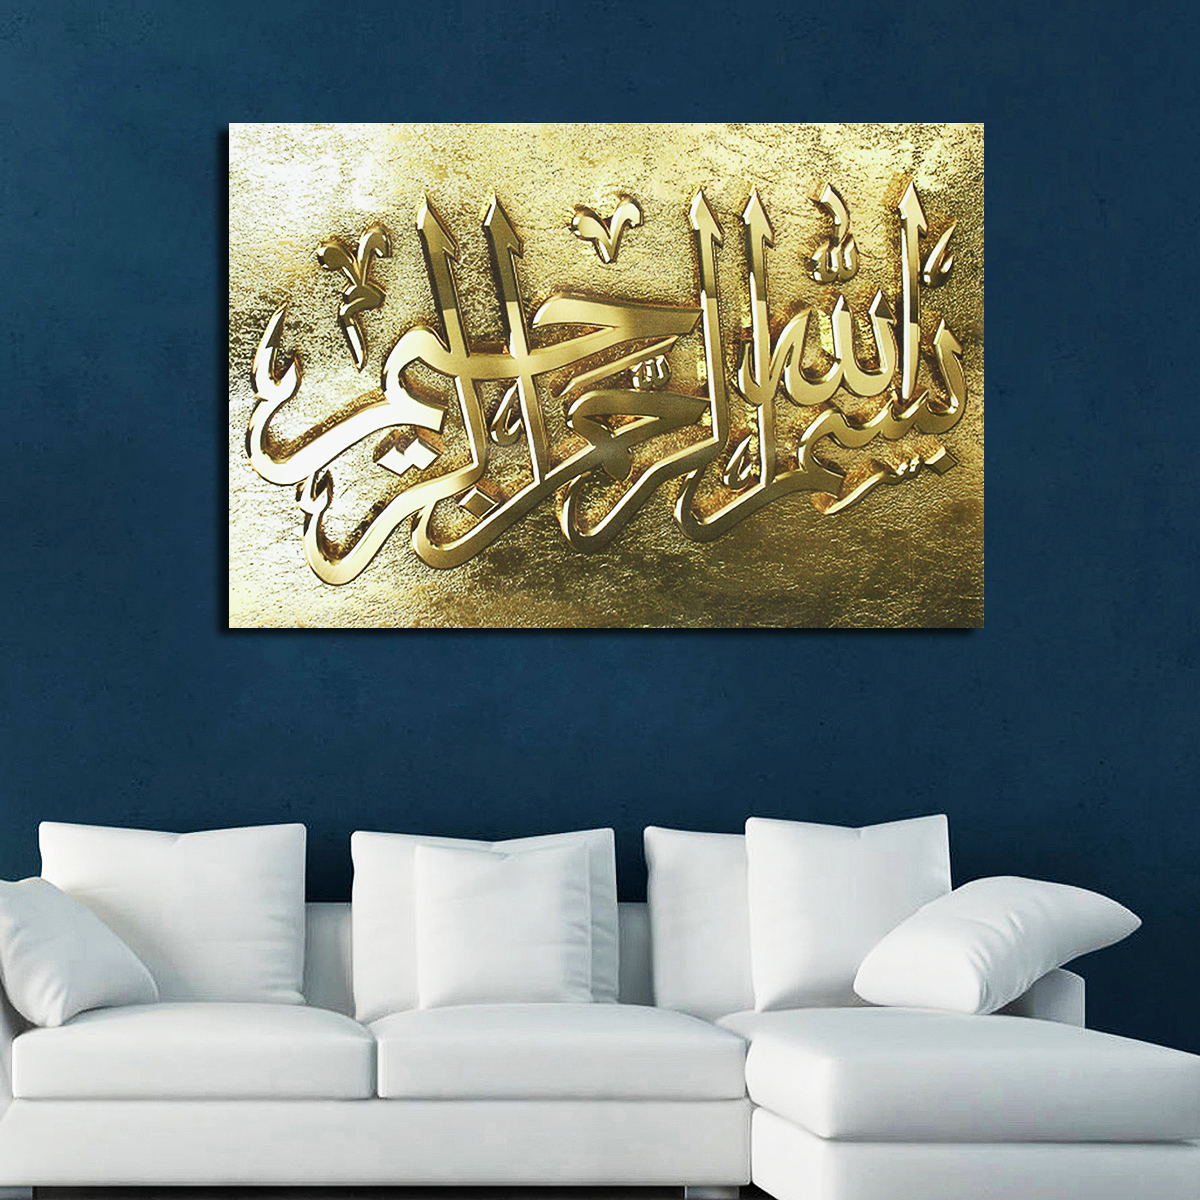 Details about modern religion islamic arabic calligraphy framed canvas print wall art decor